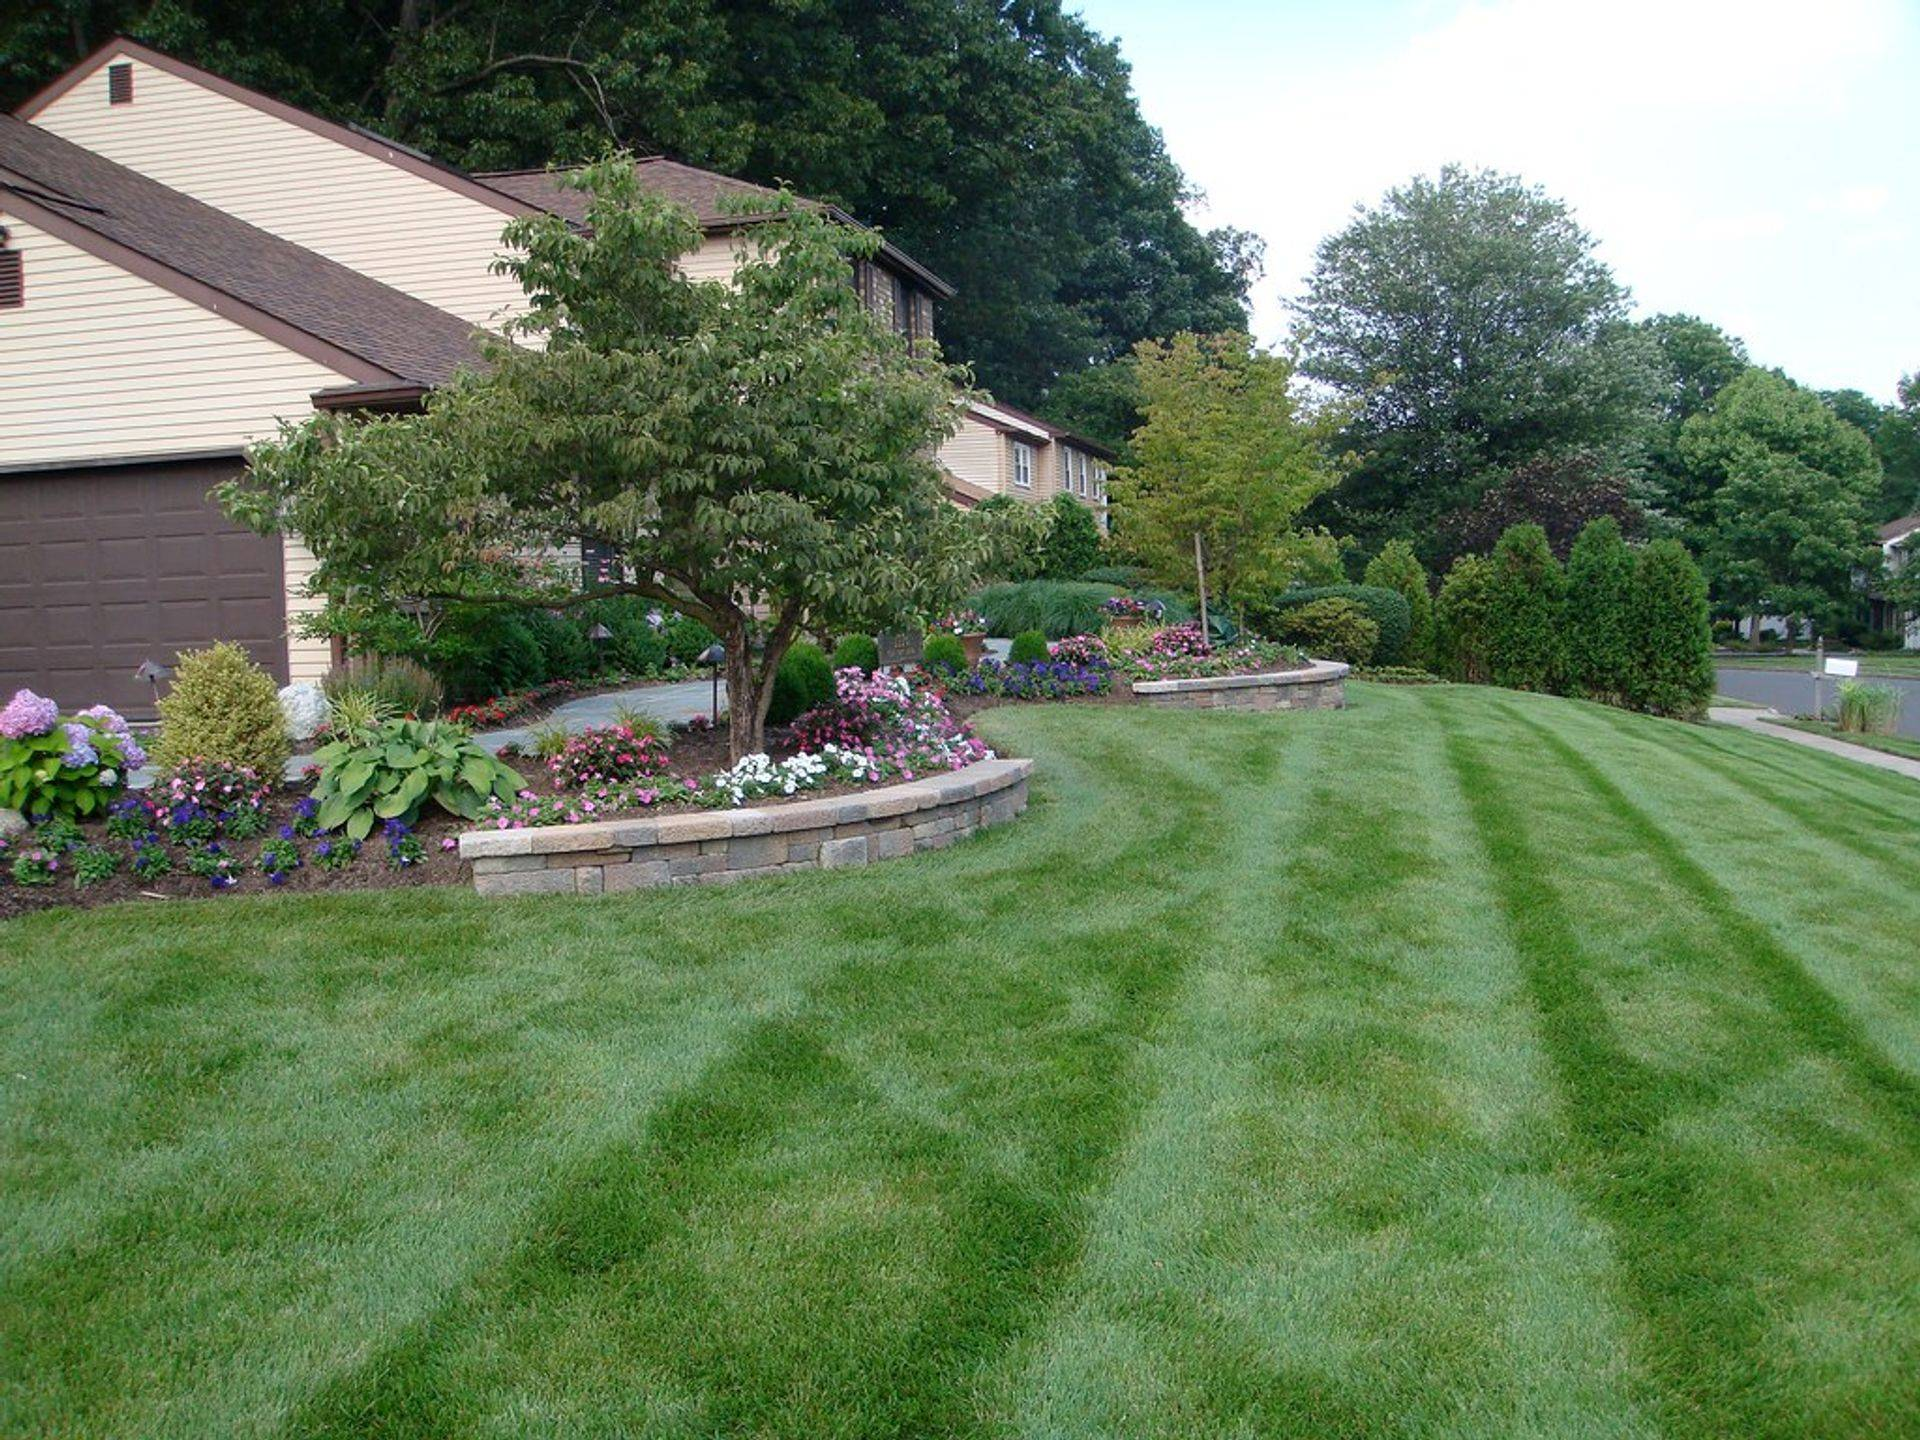 Landscaping Ideas that work!